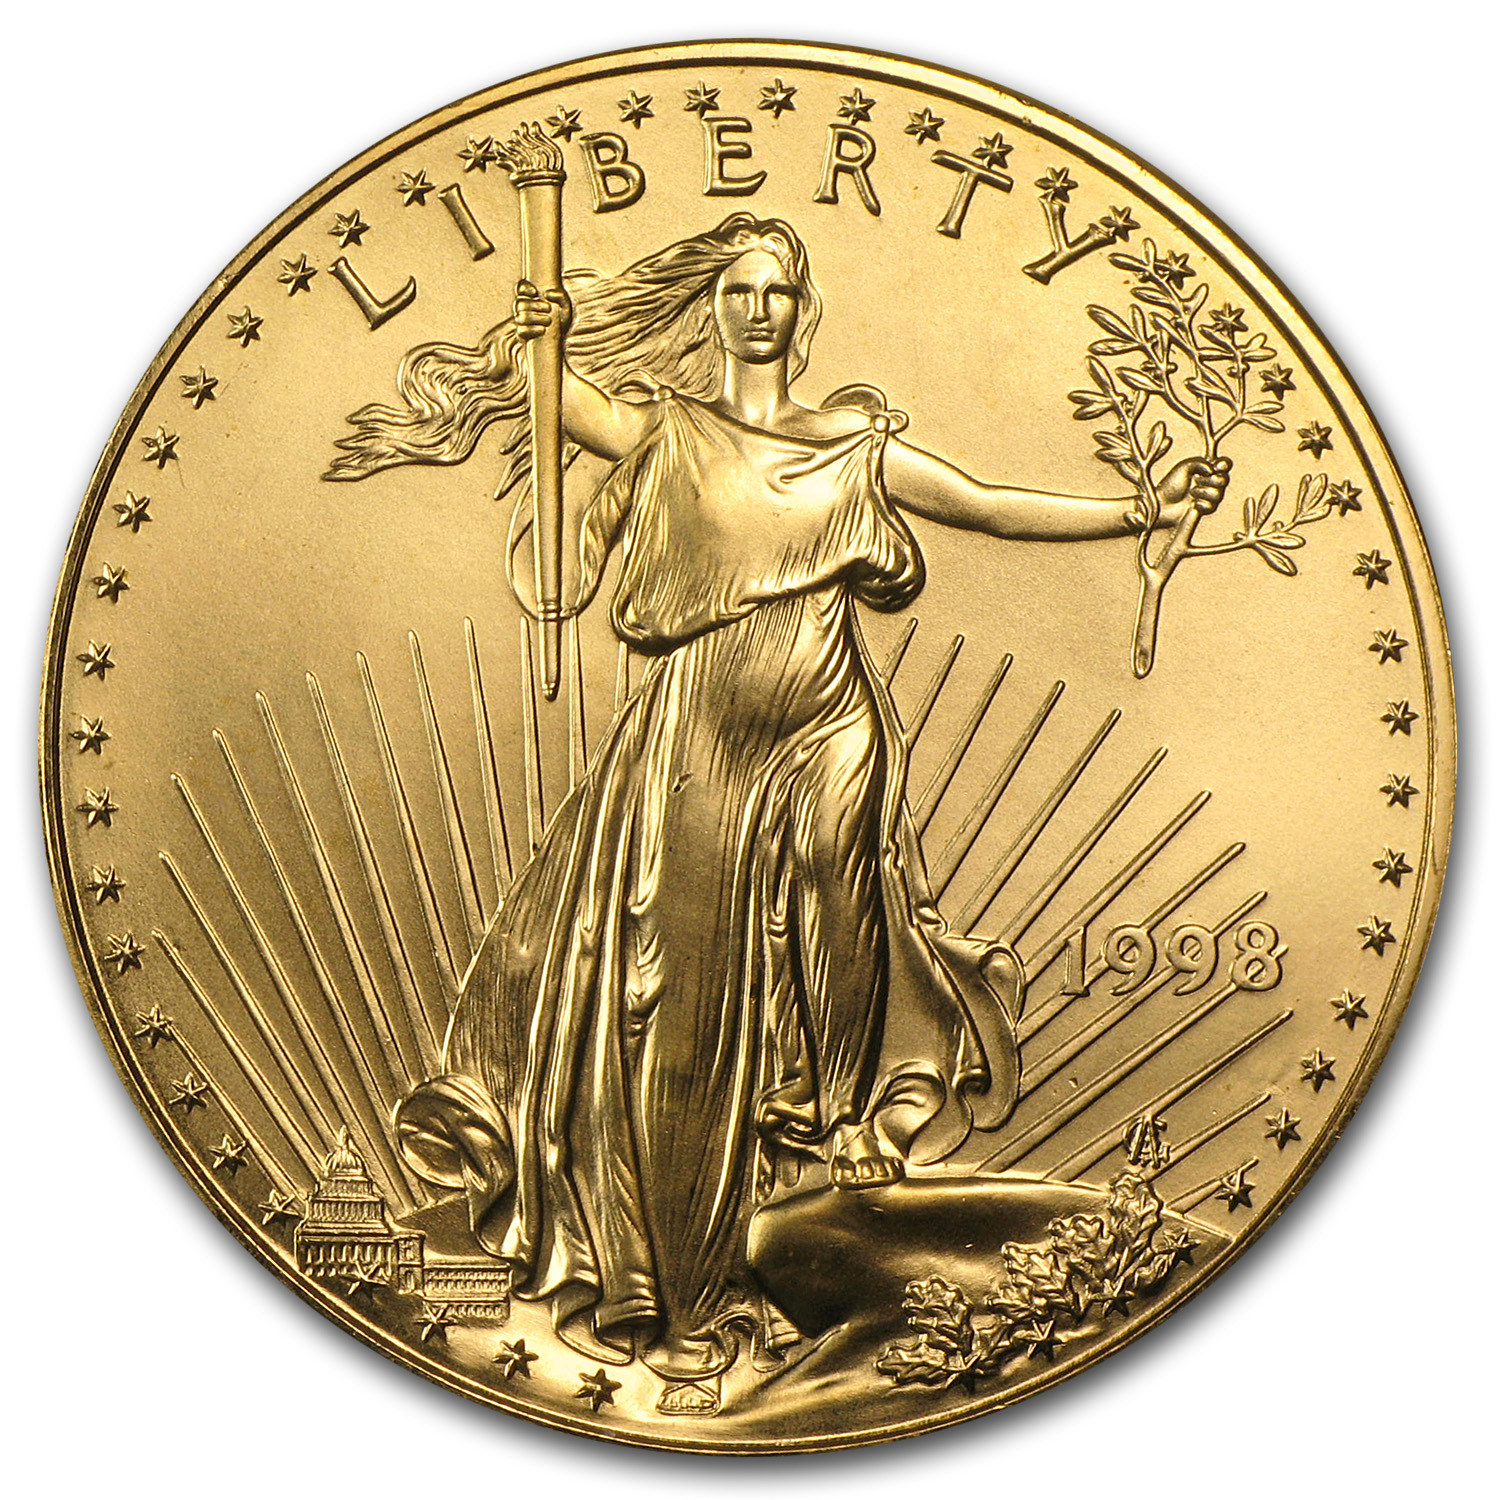 1998 1 oz Gold American Eagle BU